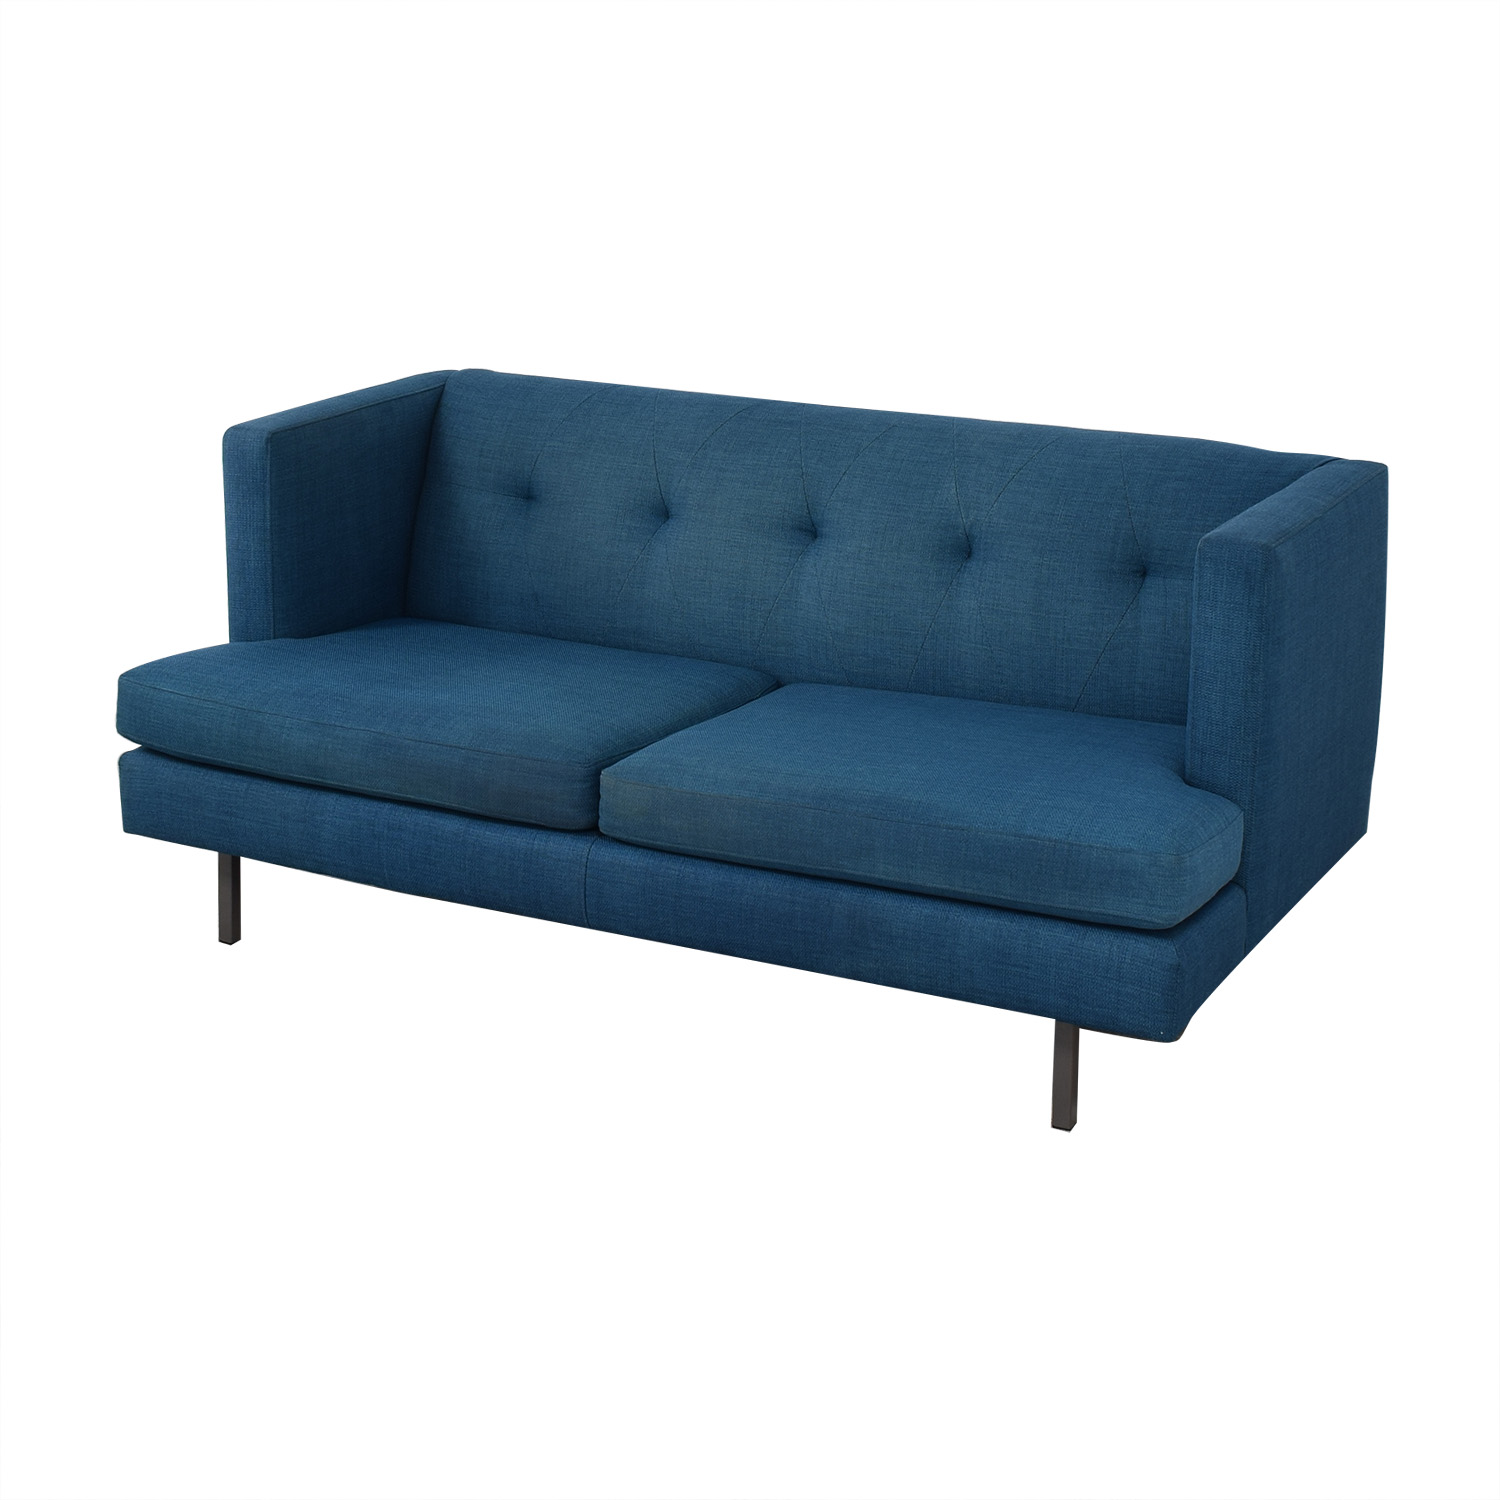 CB2 Apartment Sofa / Sofas